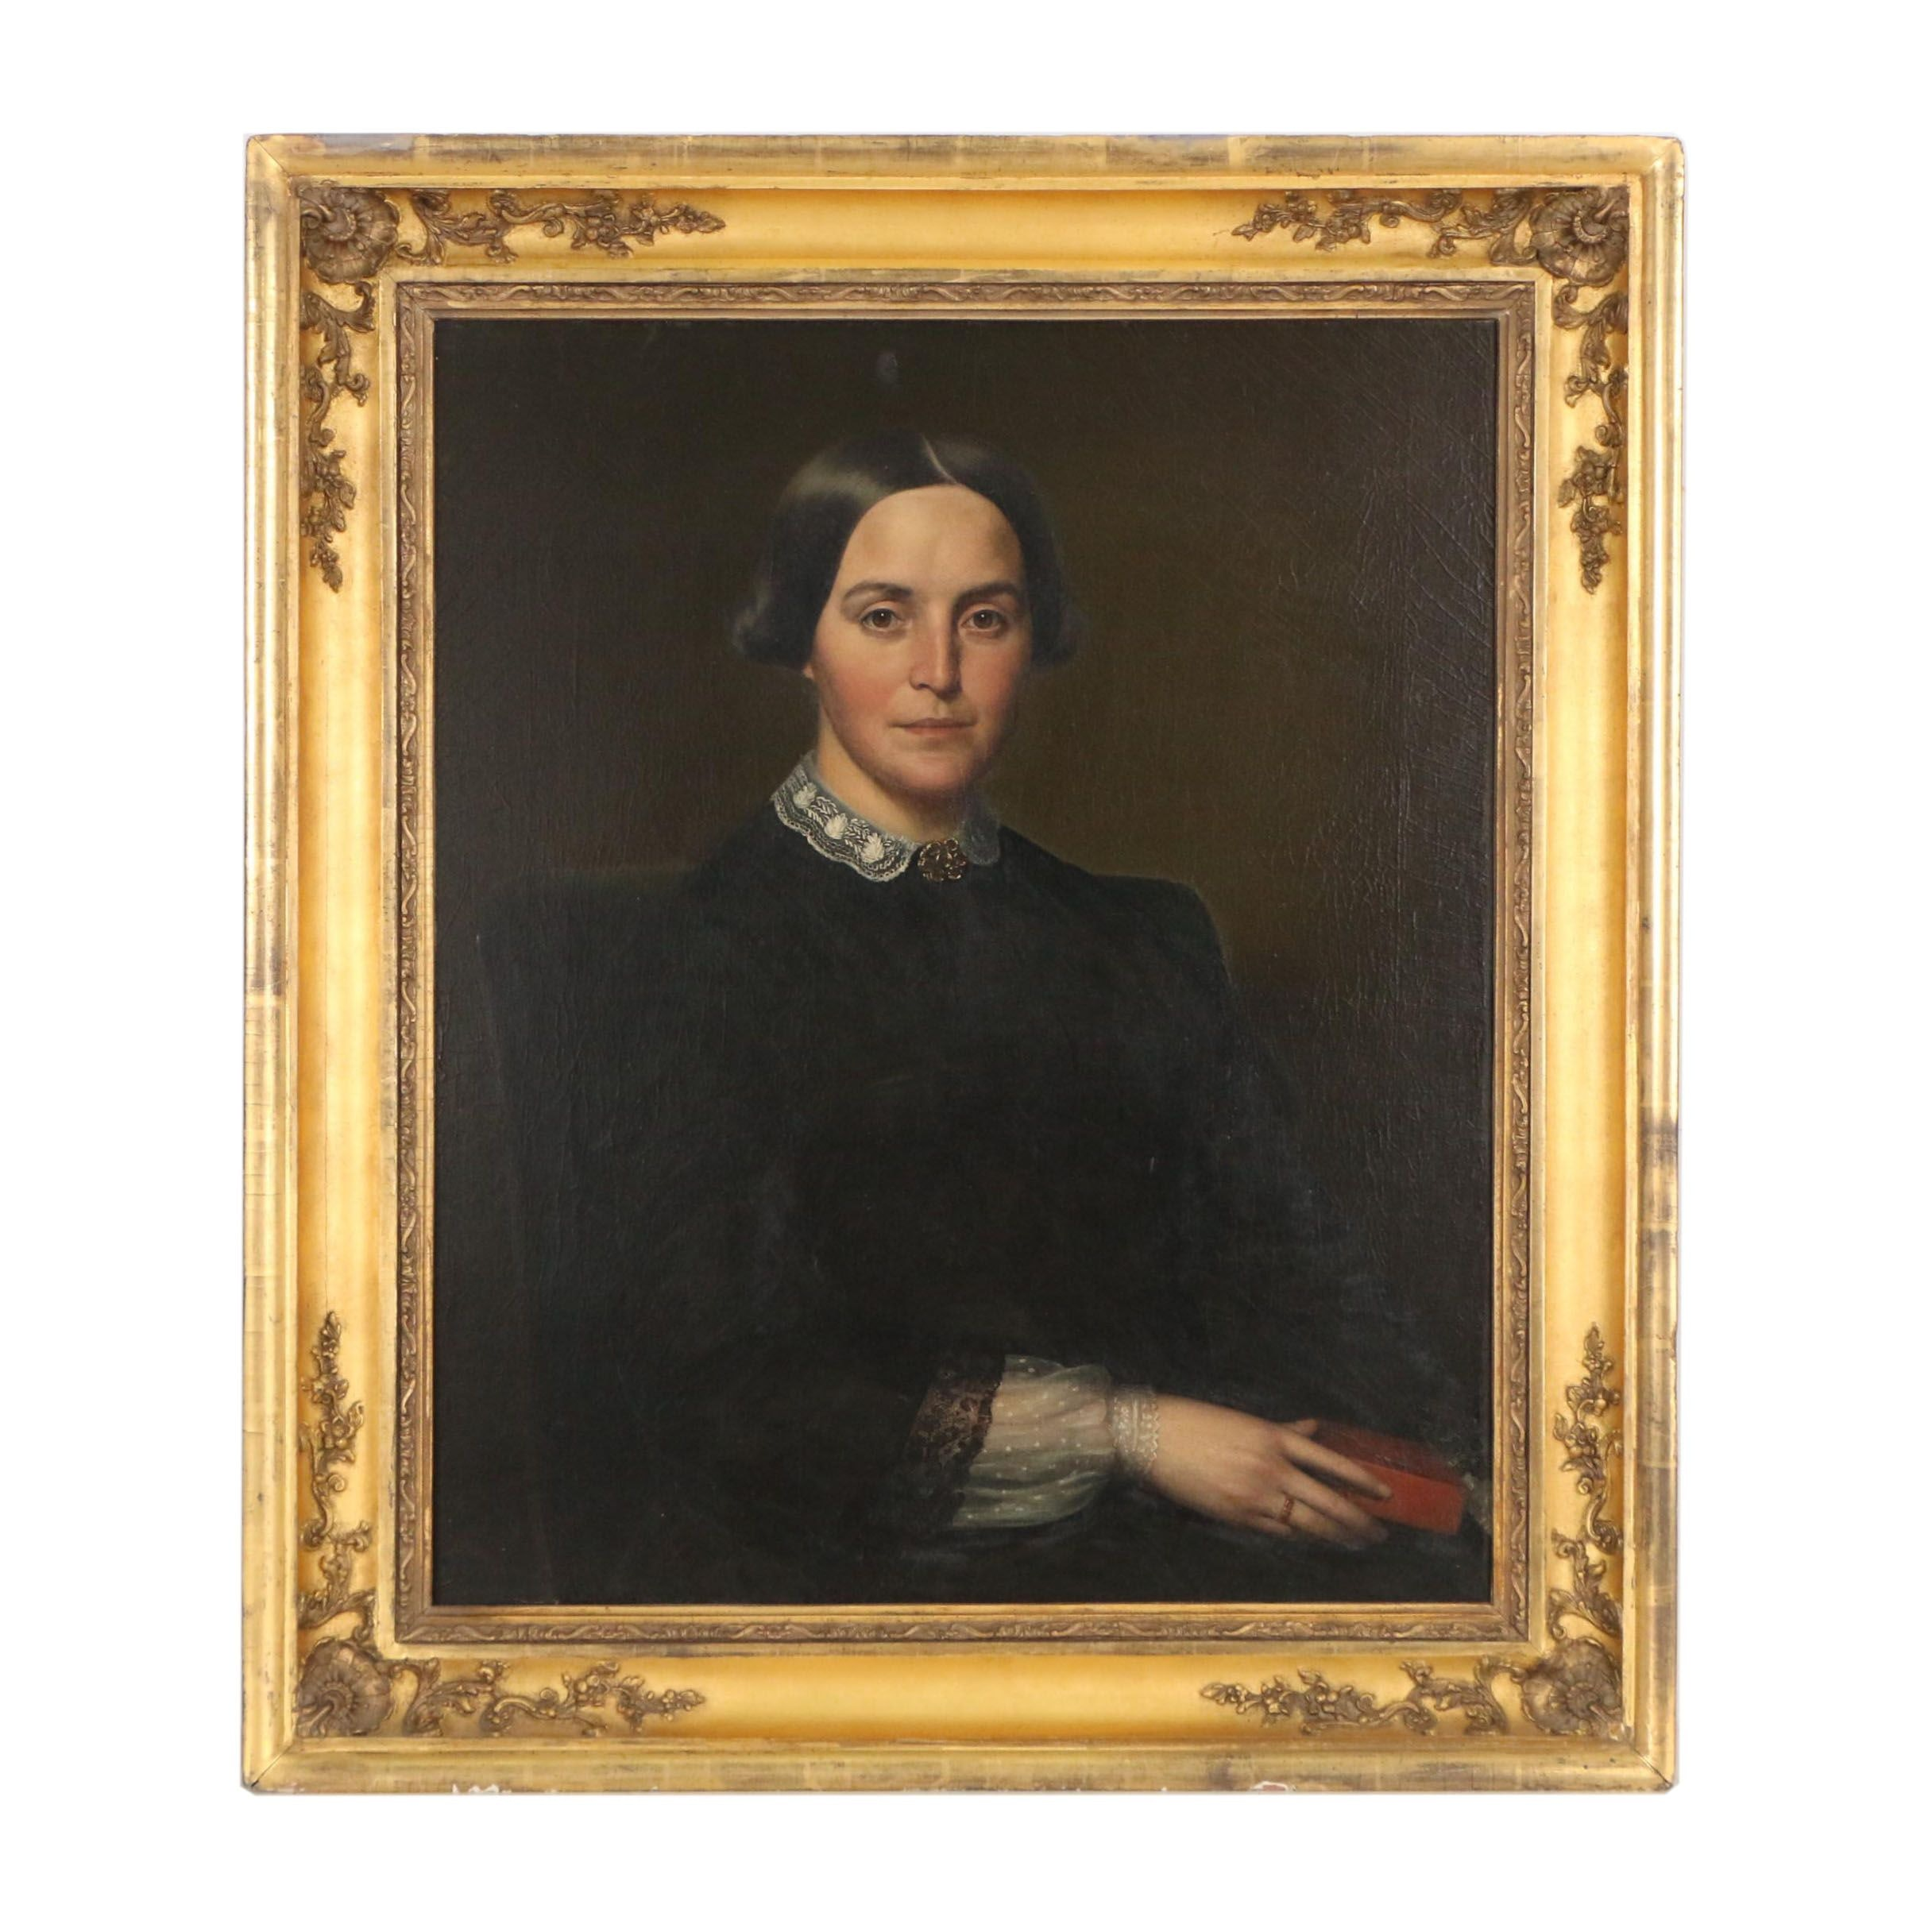 Portrait Oil Painting Attributed to Joseph Allen Haskell